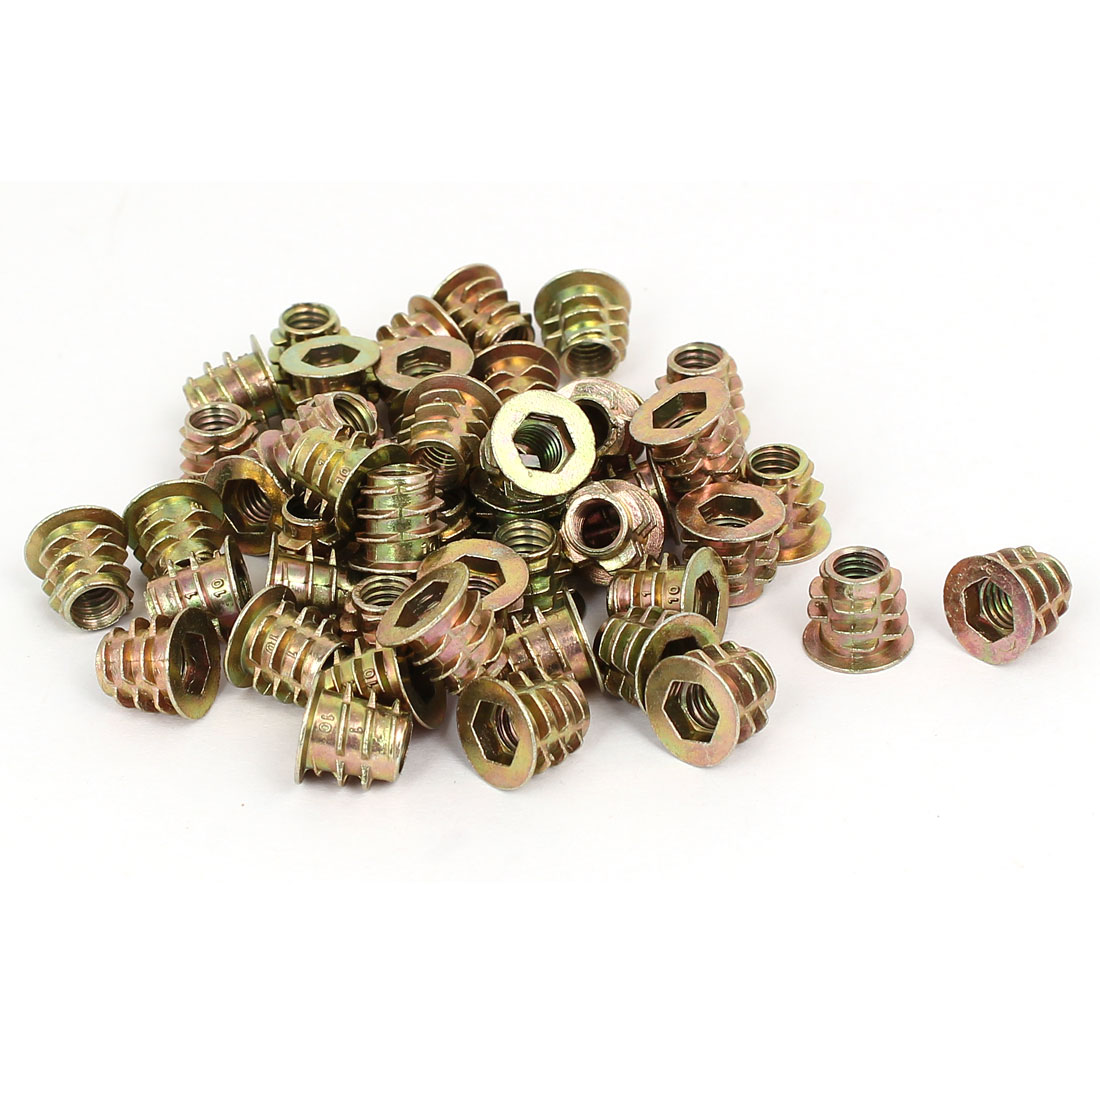 M6 x 10mm Hex Socket Head Insert Screws E-Nuts Furniture Fittings 50pcs